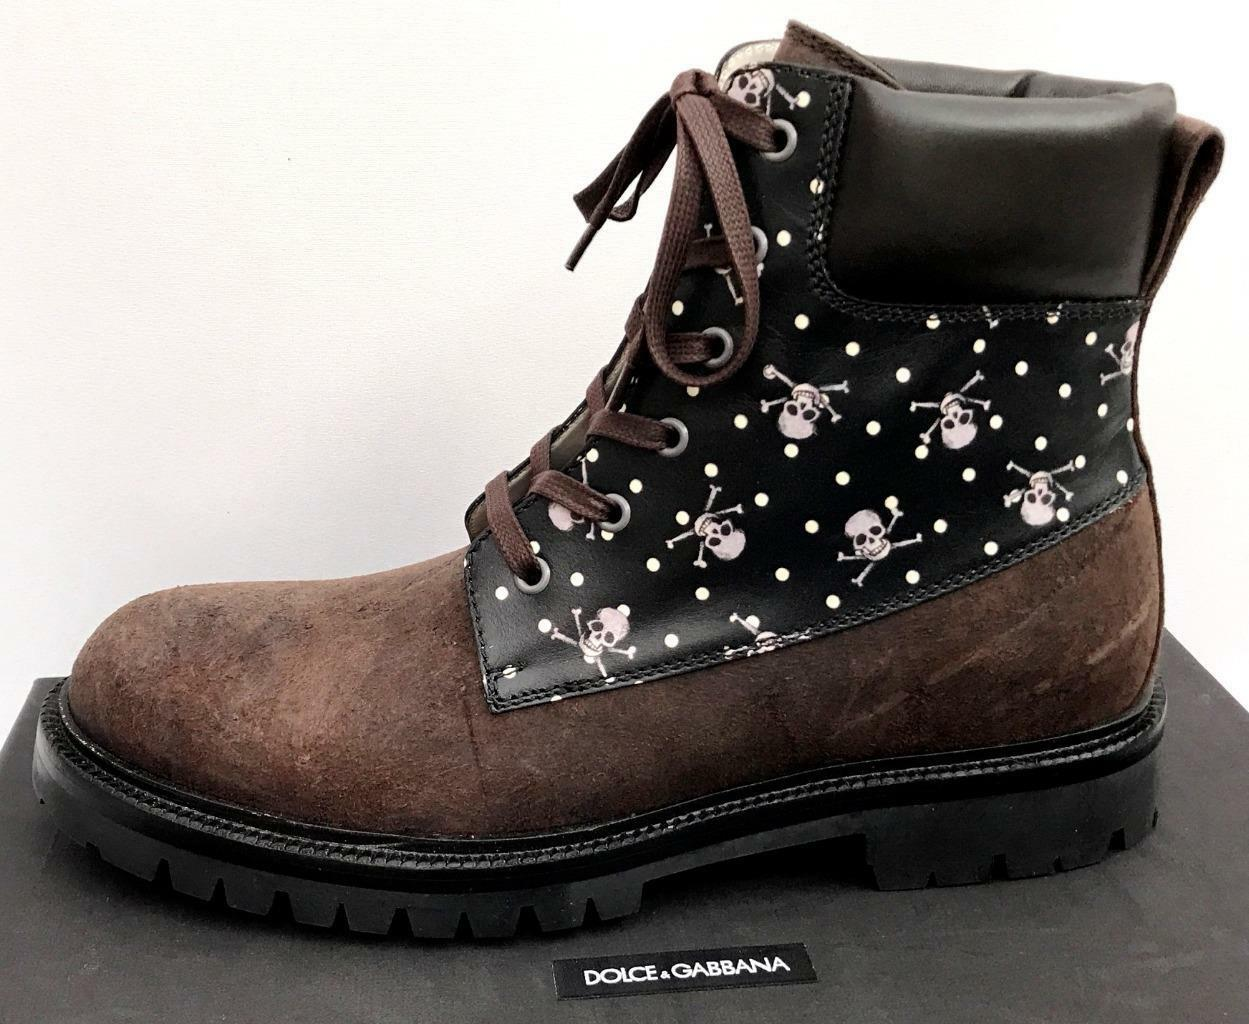 Dolce Gabbana Skull Leather Boots UK8 IT42 US9 RRP790GBP New Auth